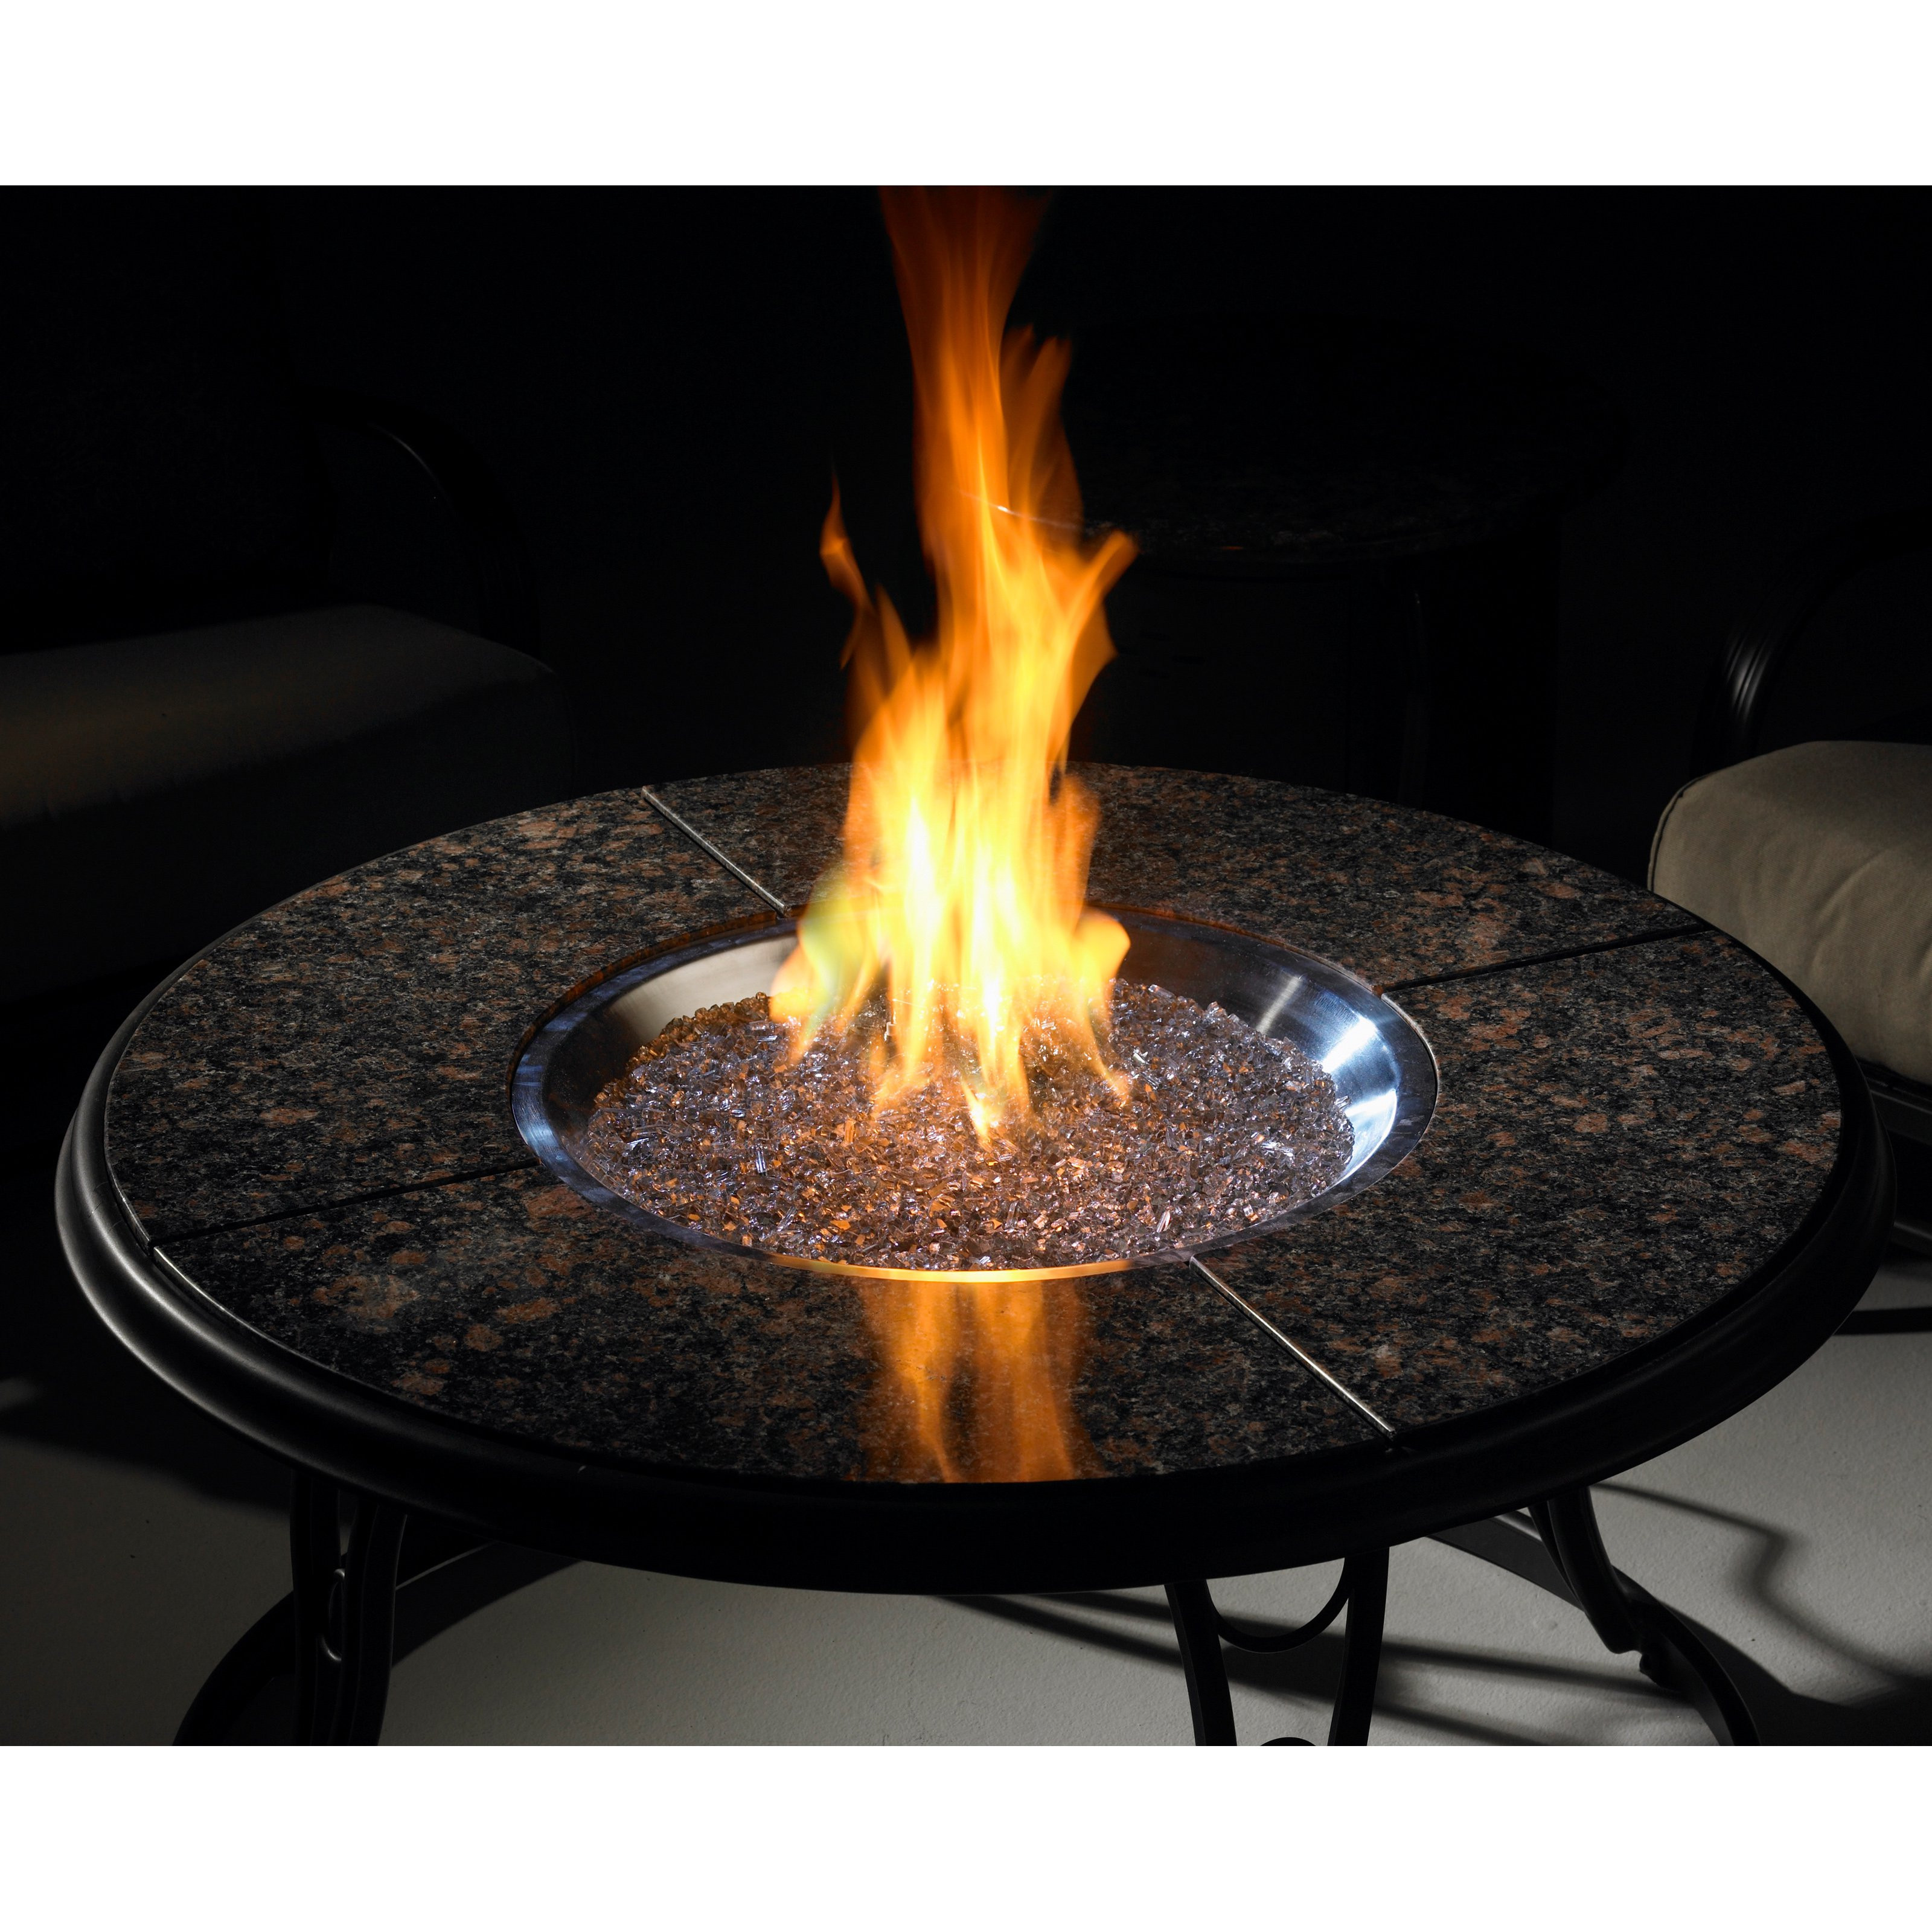 Best ideas about Outdoor Gas Fire Pits . Save or Pin Outdoor GreatRoom Granite Gas Fire Pit Table at Hayneedle Now.